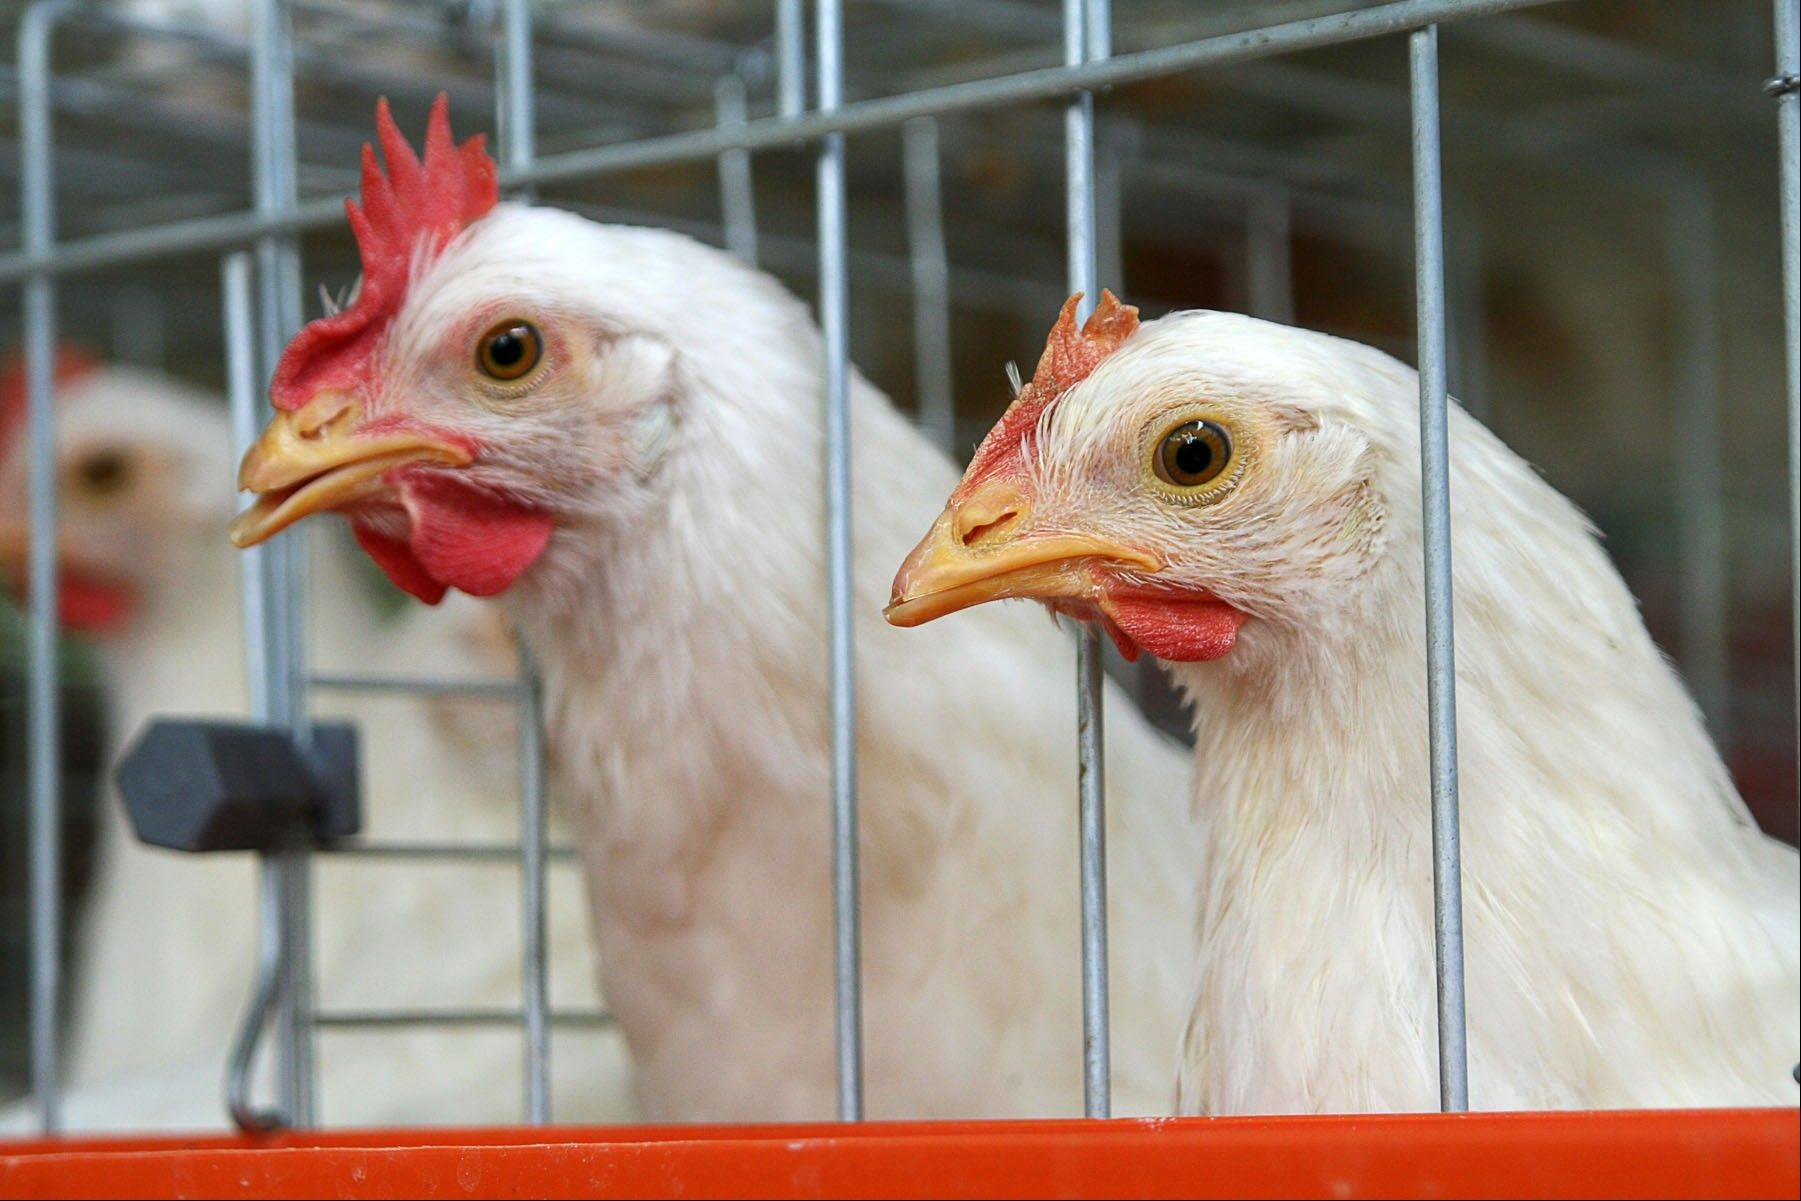 While the Libertyville village board will have the final say on a test program to allow residents to keep chickens, a negative recommendation from its special projects committee will carry considerable weight.